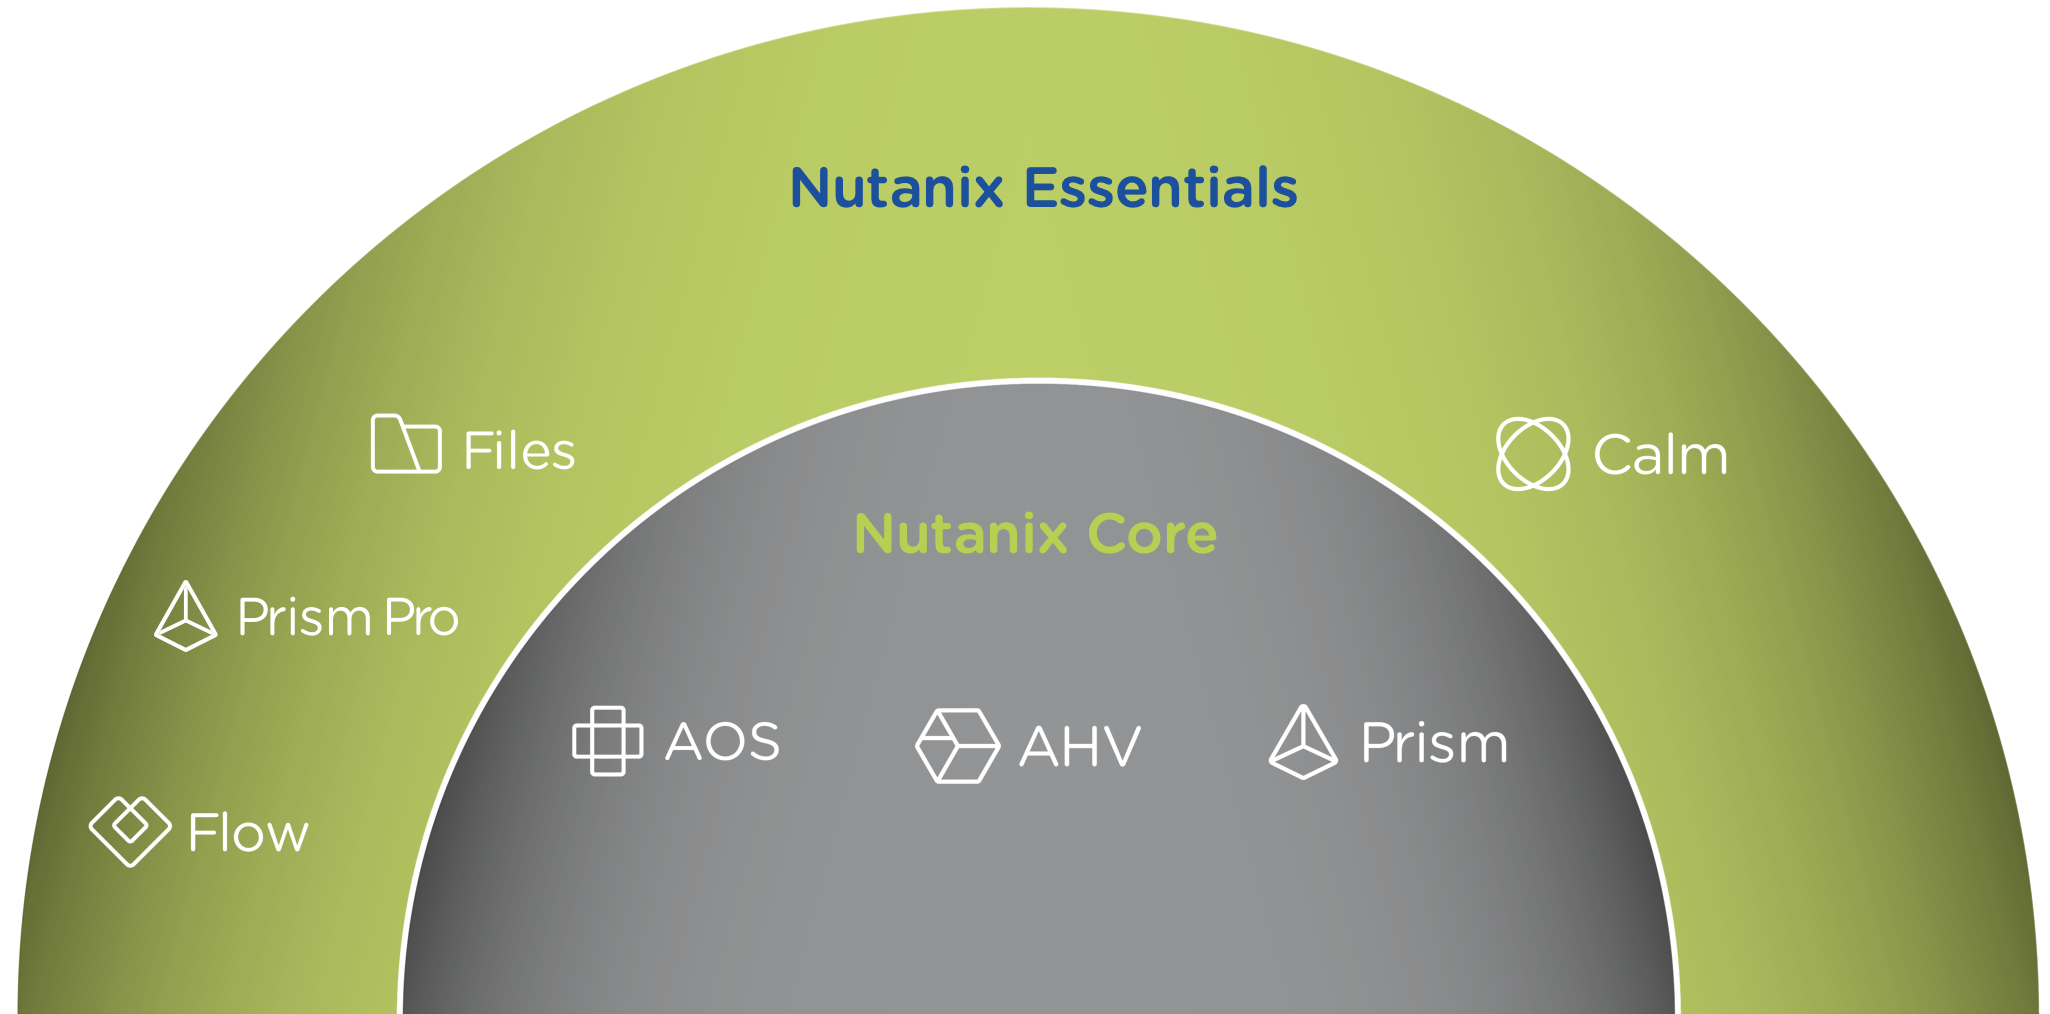 The Nutanix Bible